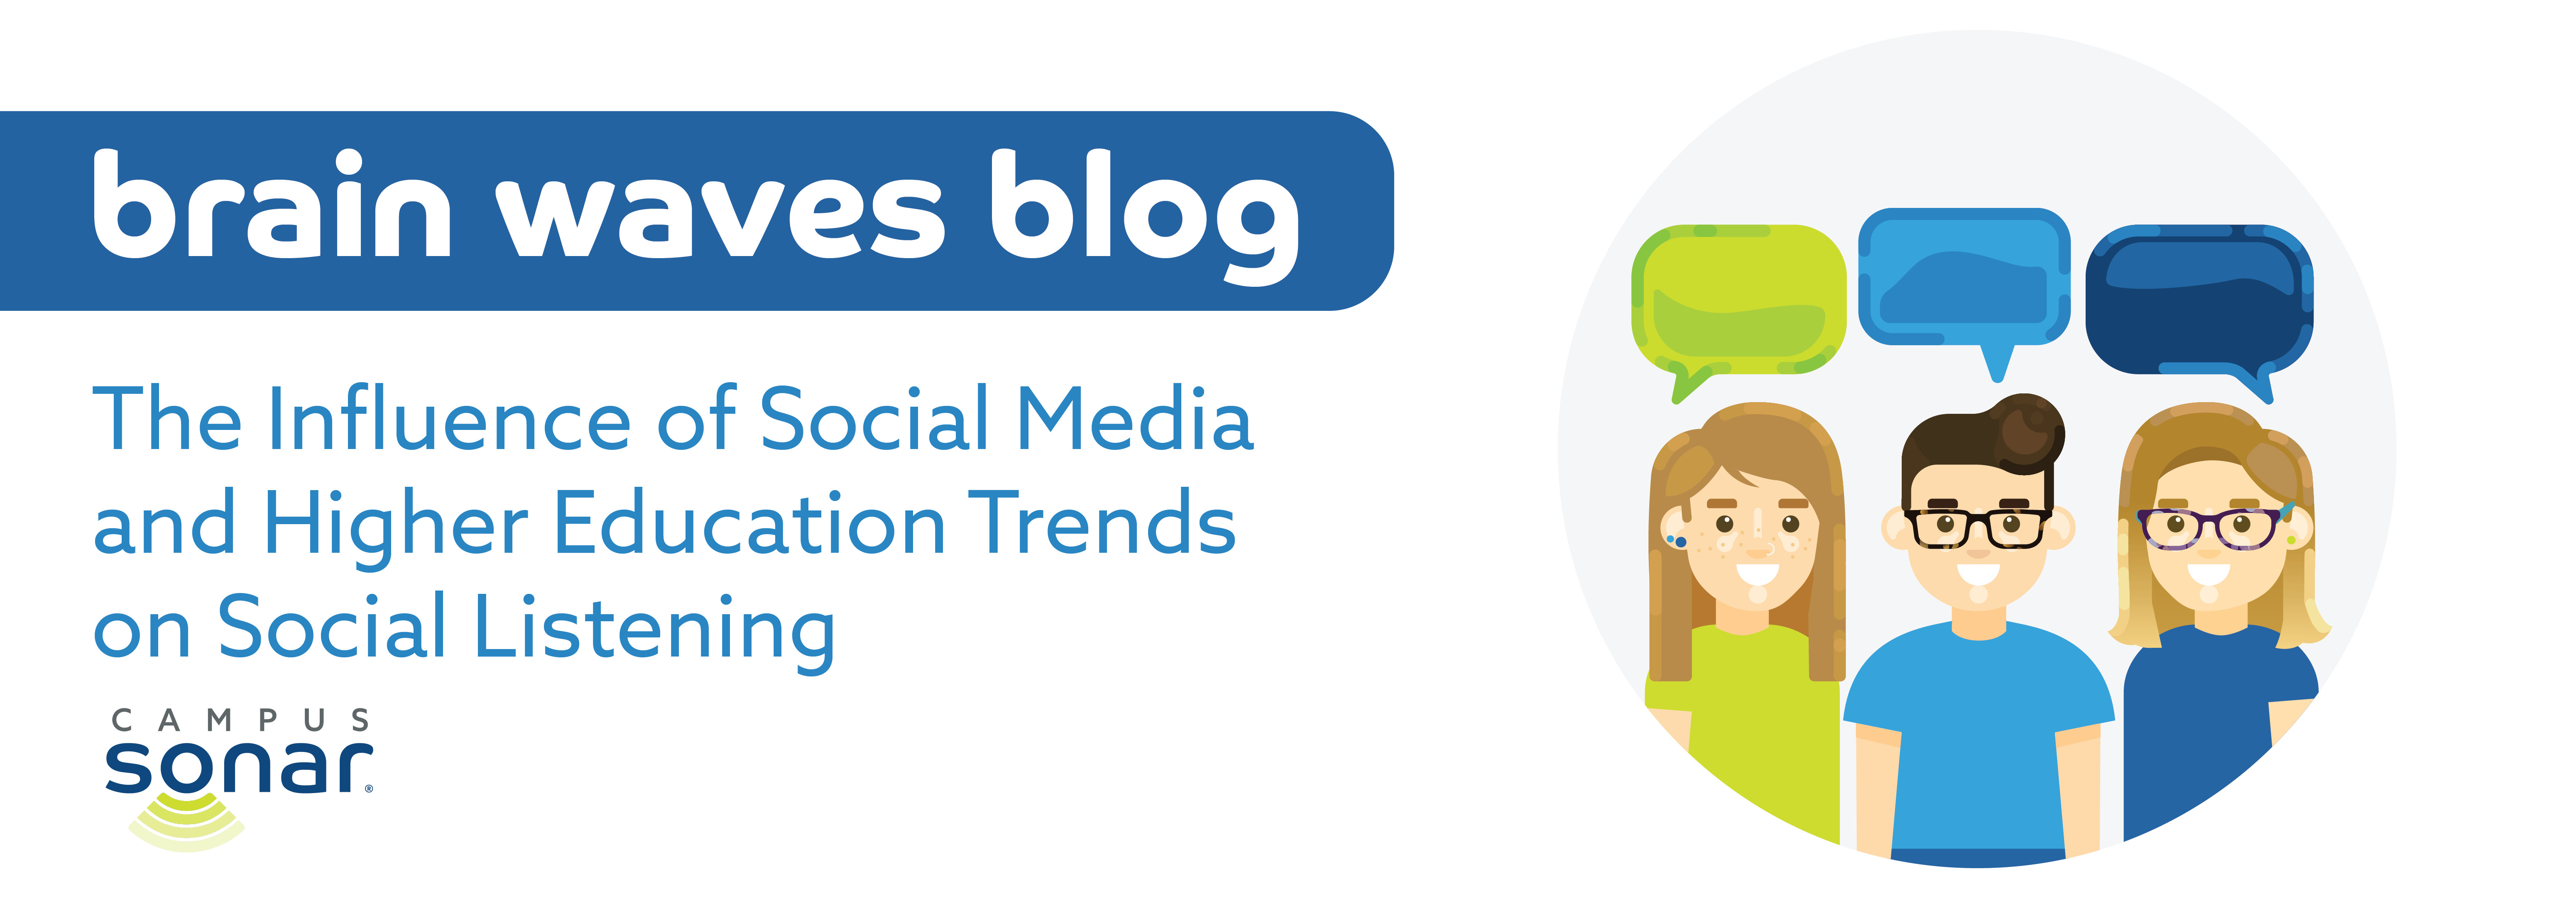 Blog post image for The Influence of Social Media and Higher Education Trends on Social Listening